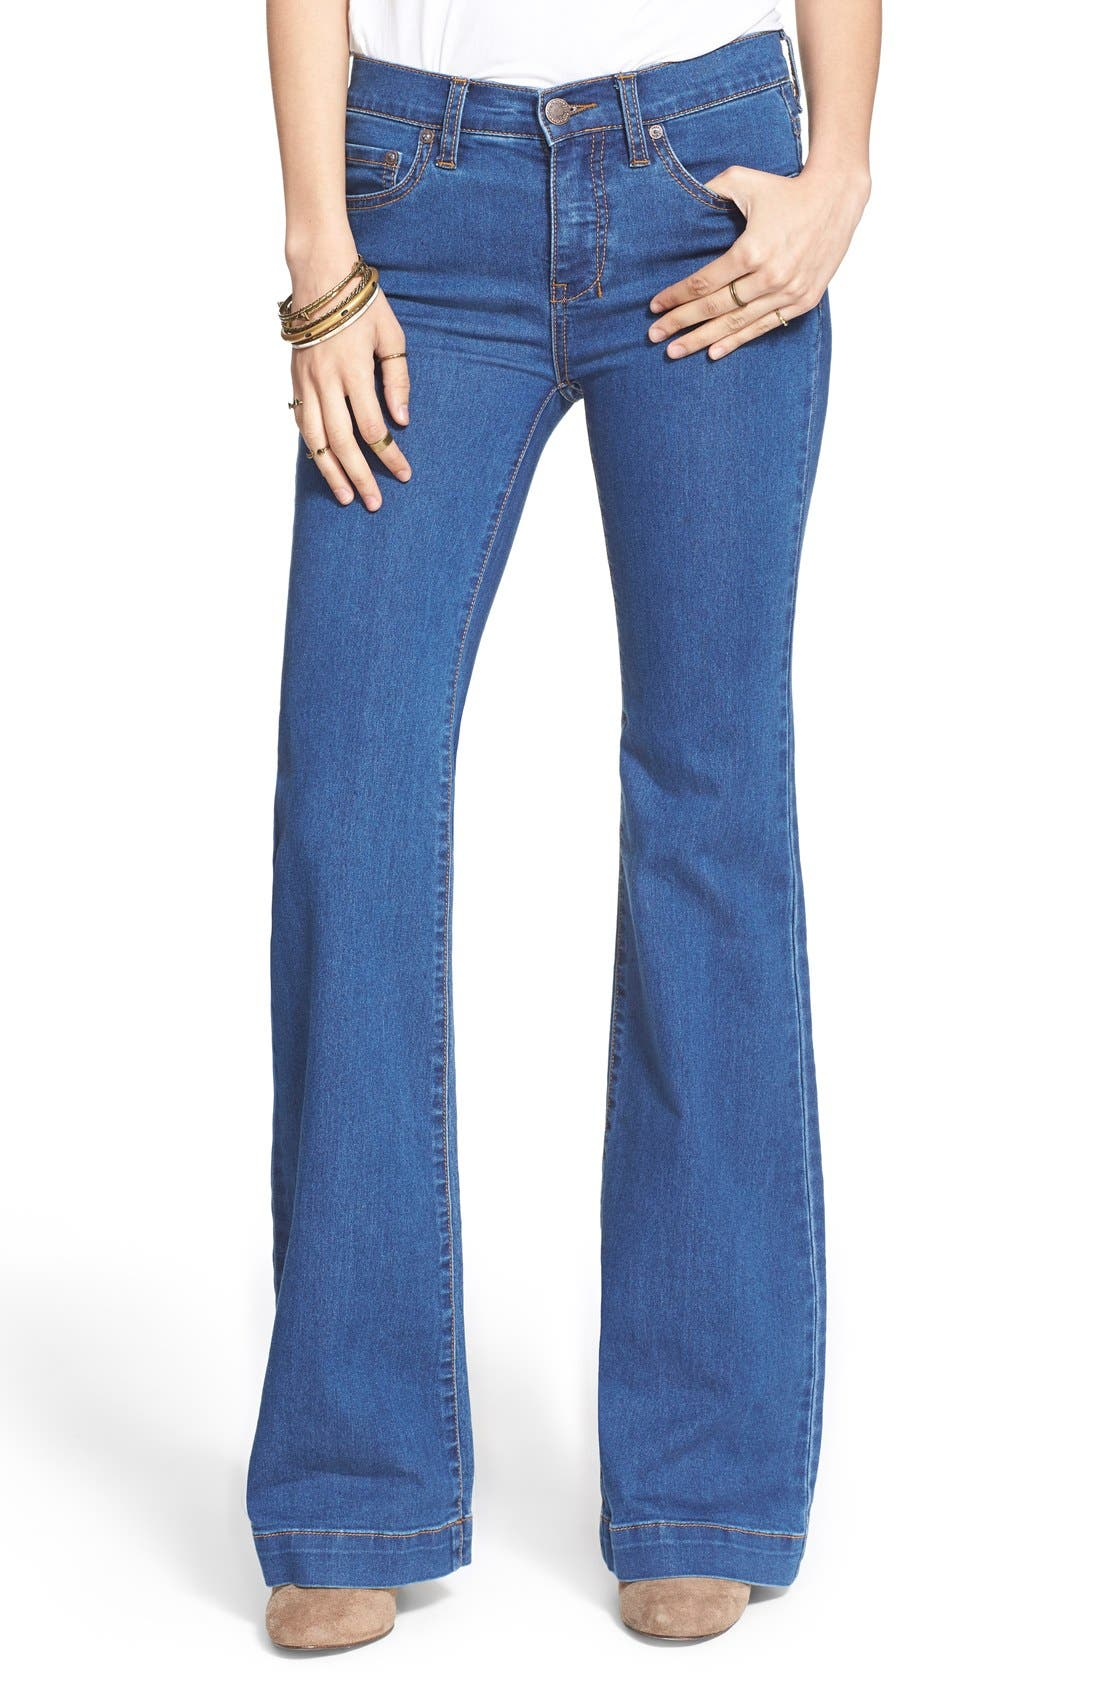 Alternate Image 1 Selected - Free People Stretch Mid Rise Flare Jeans